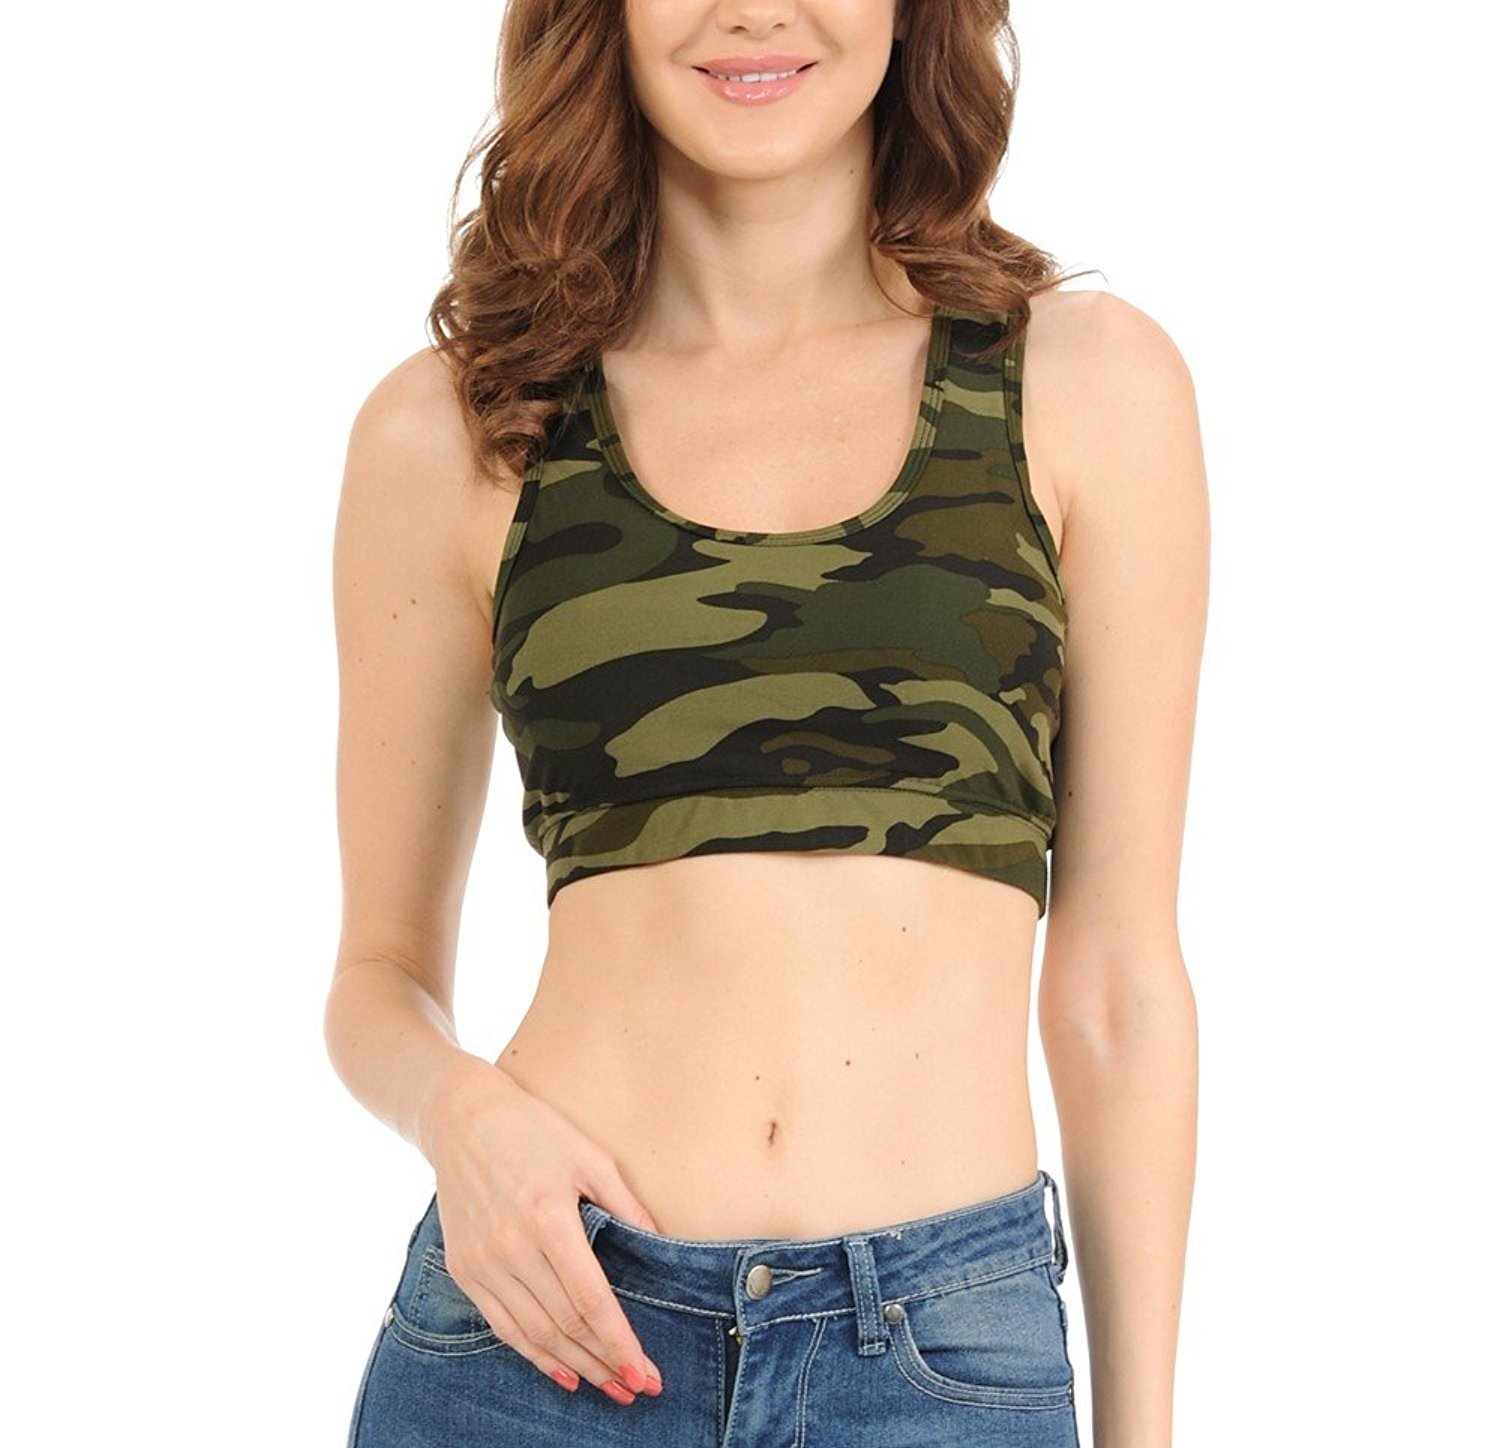 87904071f74f6 Get Quotations · bluensquare Racer Back Sports Bra For Women Camouflage Removable  Pad Yoga Gym Fitness Crop Top